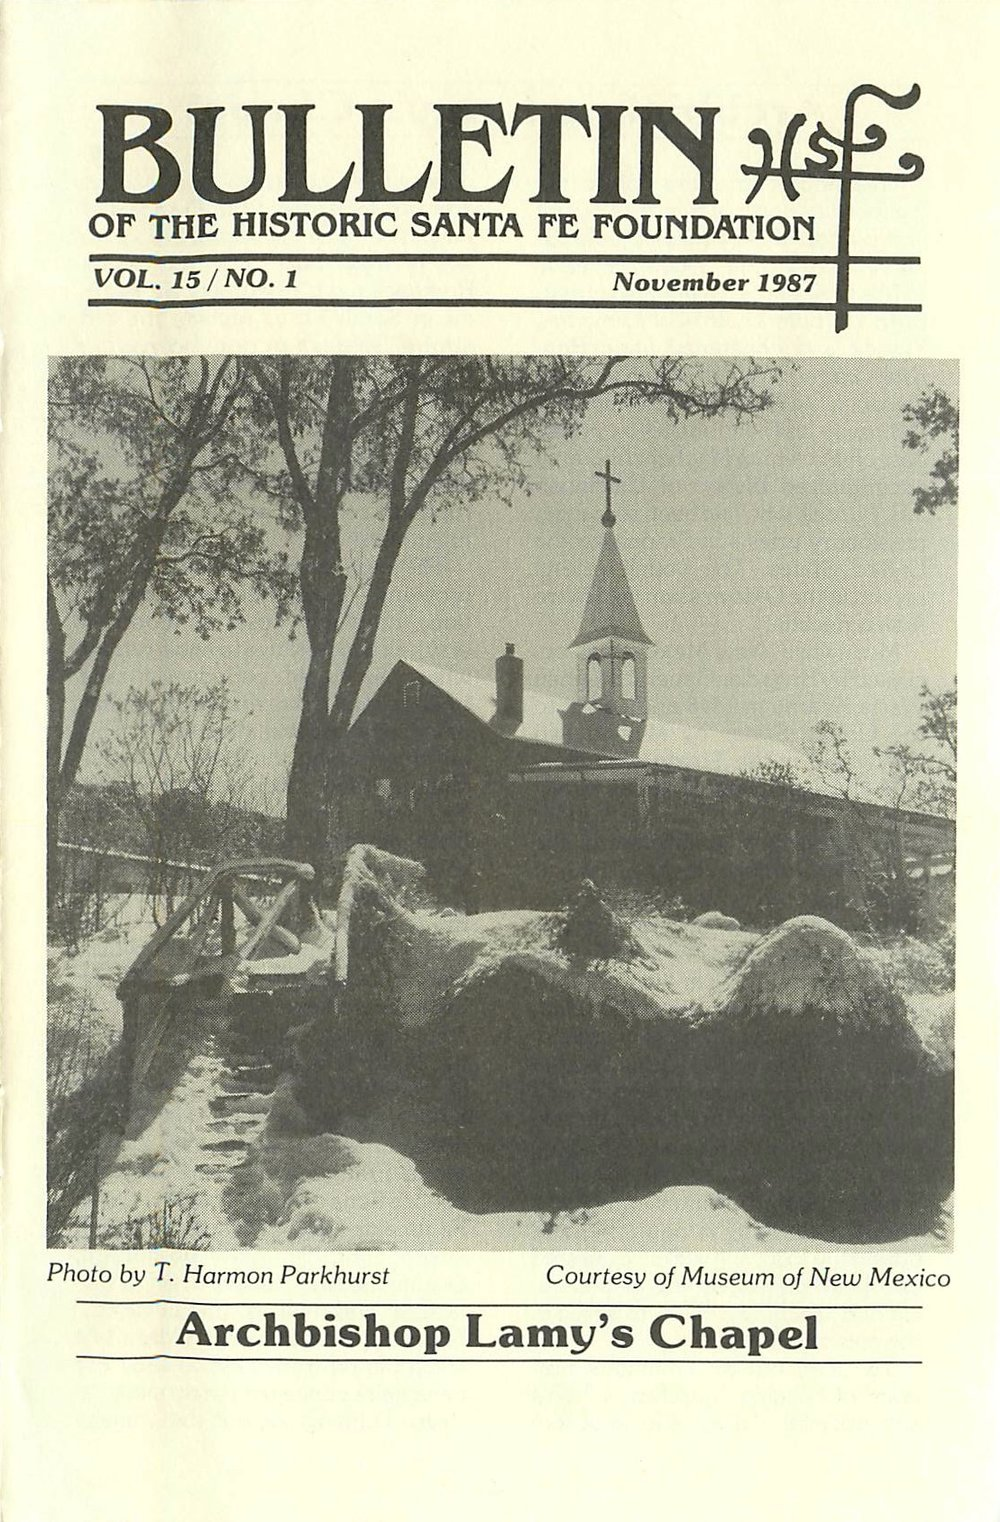 1987 HSFF Bulletin Vol.15 No.1 Cover